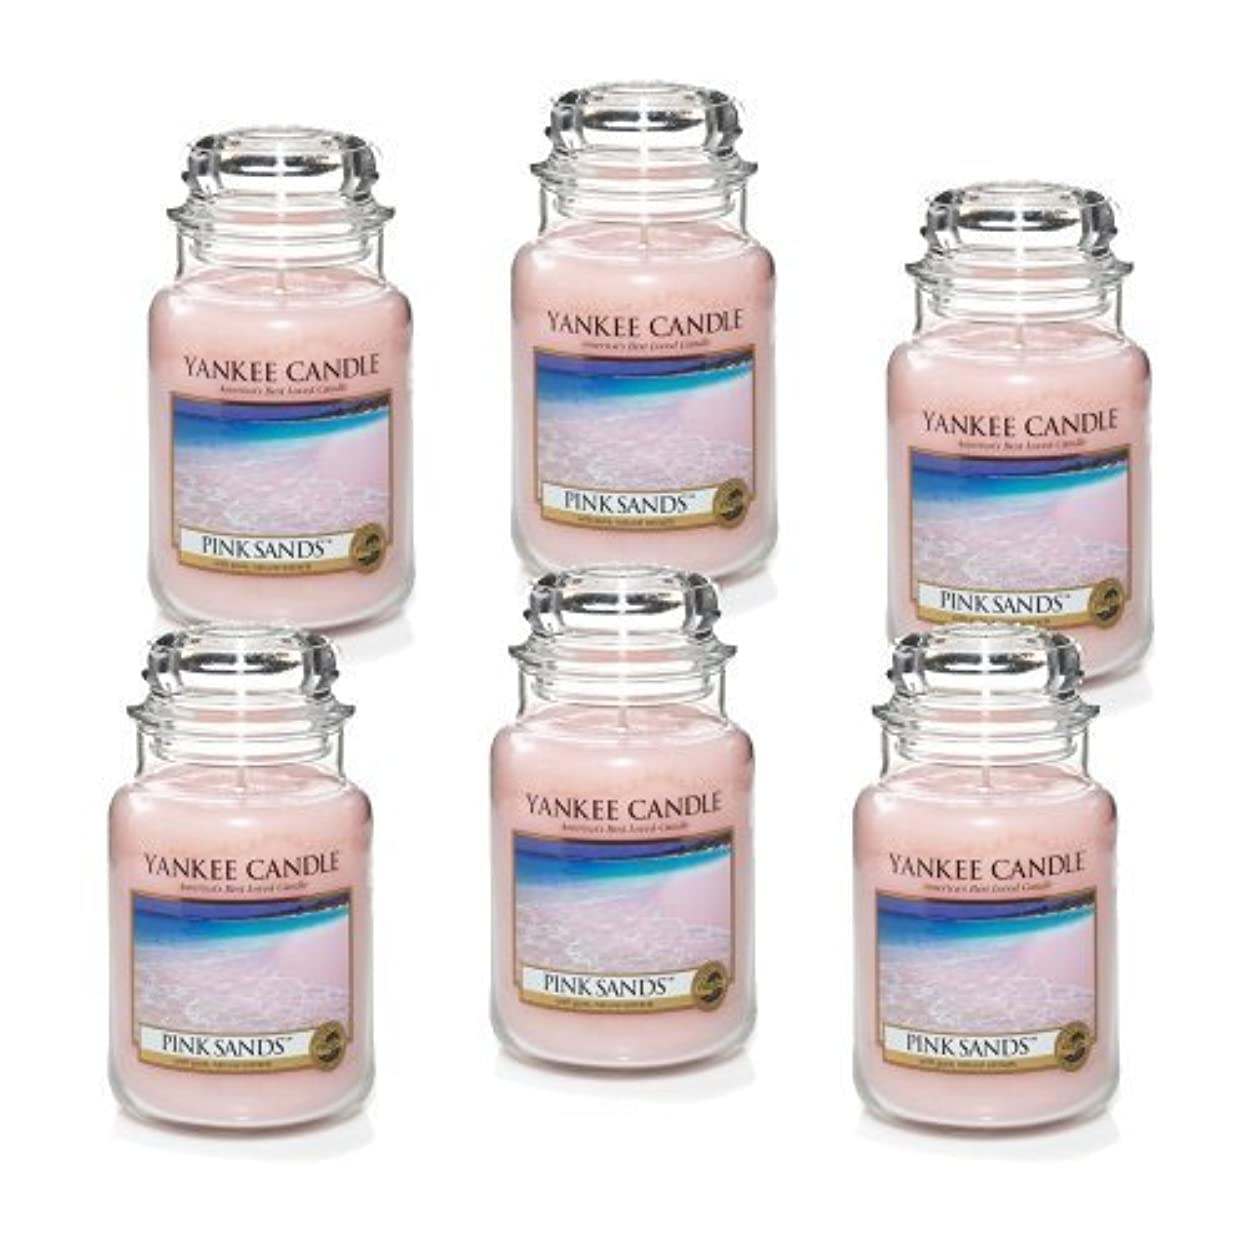 マーベル全滅させる不均一Yankee Candle Company 22-Ounce Pink Sands Jar Candle, Large, Set of 6 by Amazon source [並行輸入品]